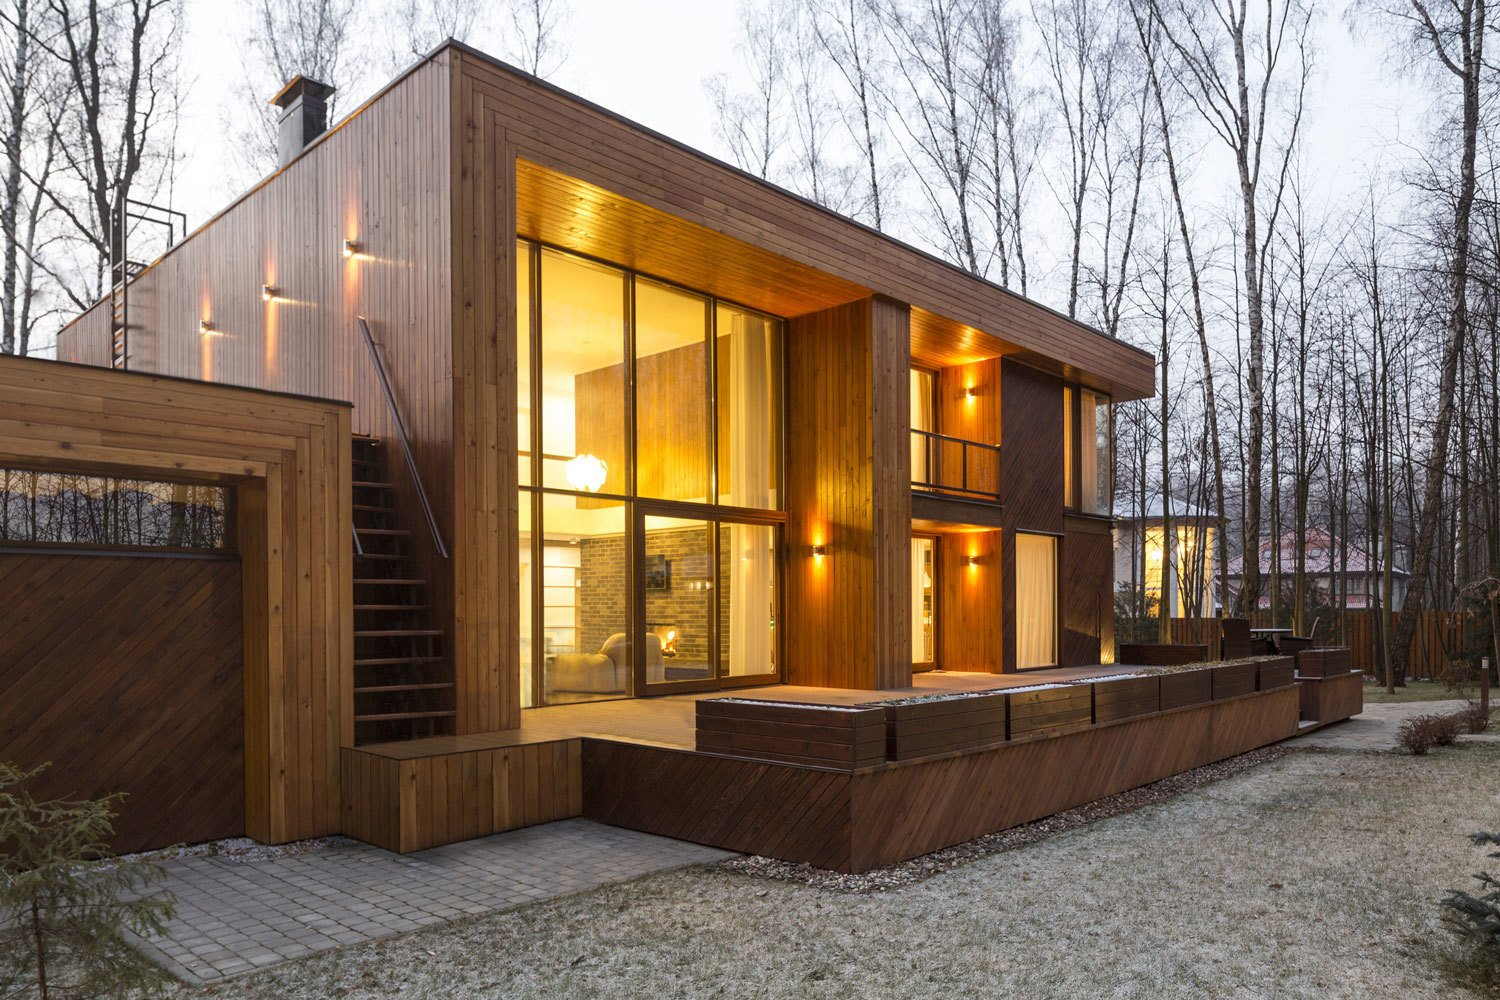 The house has two distinct volumes. The smaller one contains the garage, as well as the heating and air conditioning units, and is topped by a green roof garden accessible by an outdoor staircase. The larger, two-level volume sits slightly above ground and contains the living, dining, and sleeping spaces—all with windows facing east into the forest.  House in Moscow by Laura C. Mallonee